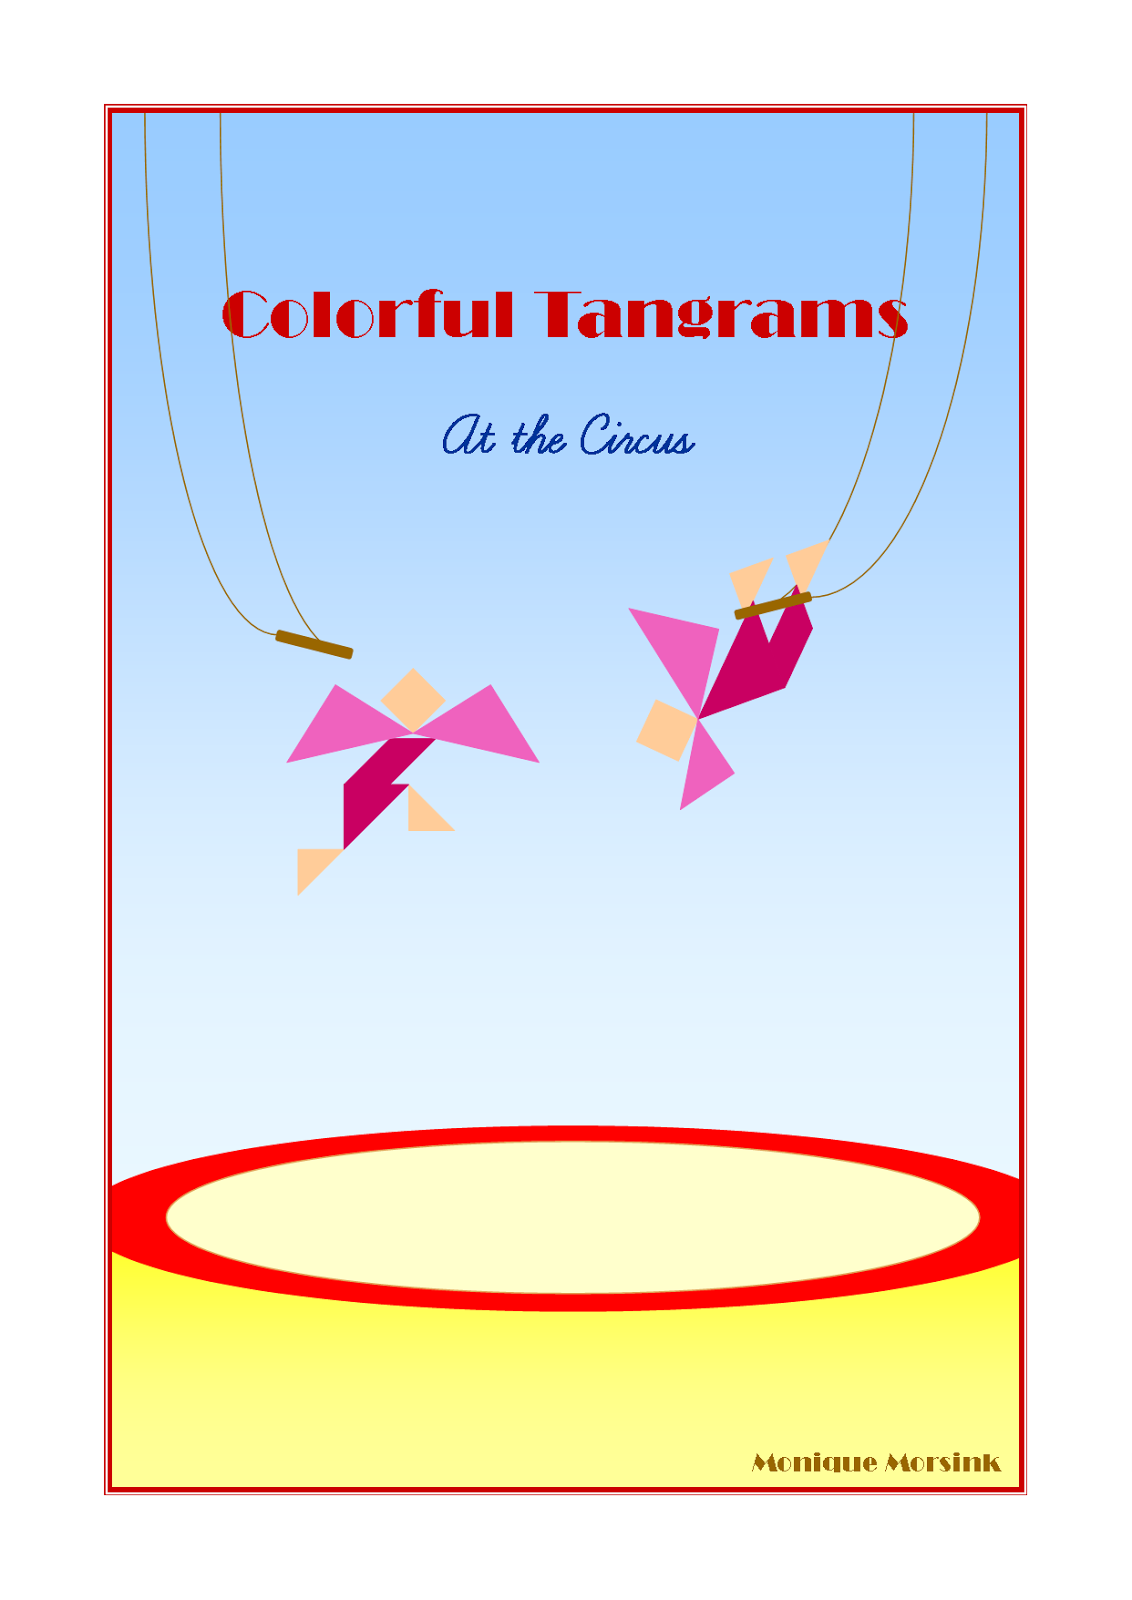 Colorful Tangrams At The Circus 2